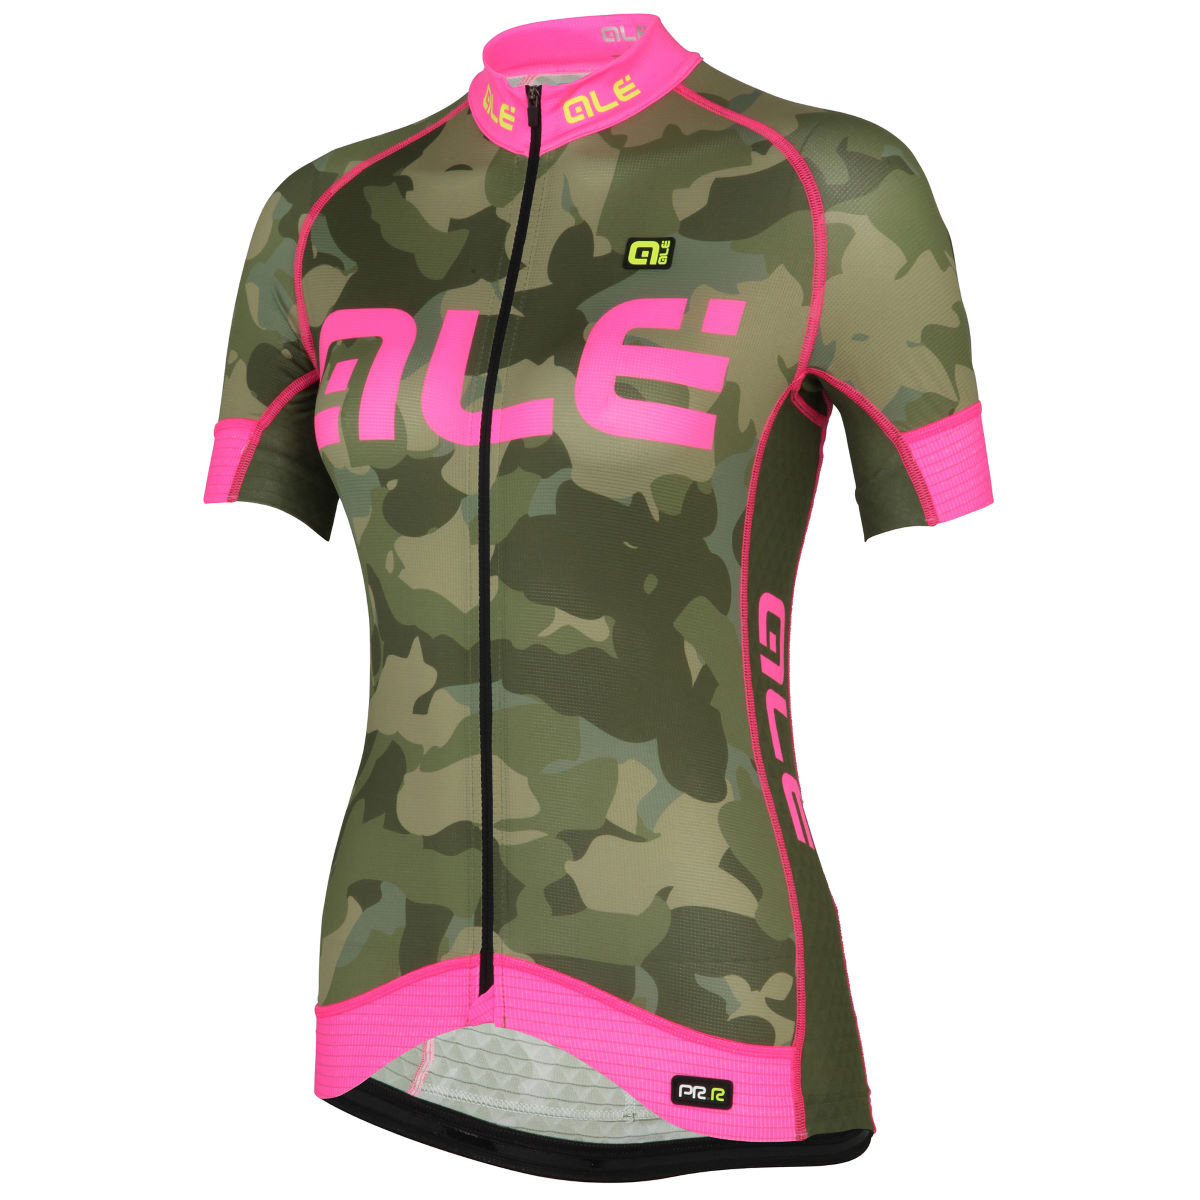 Maillot Femme Alé Graphics PRR Camo - S Green/Pink Maillots